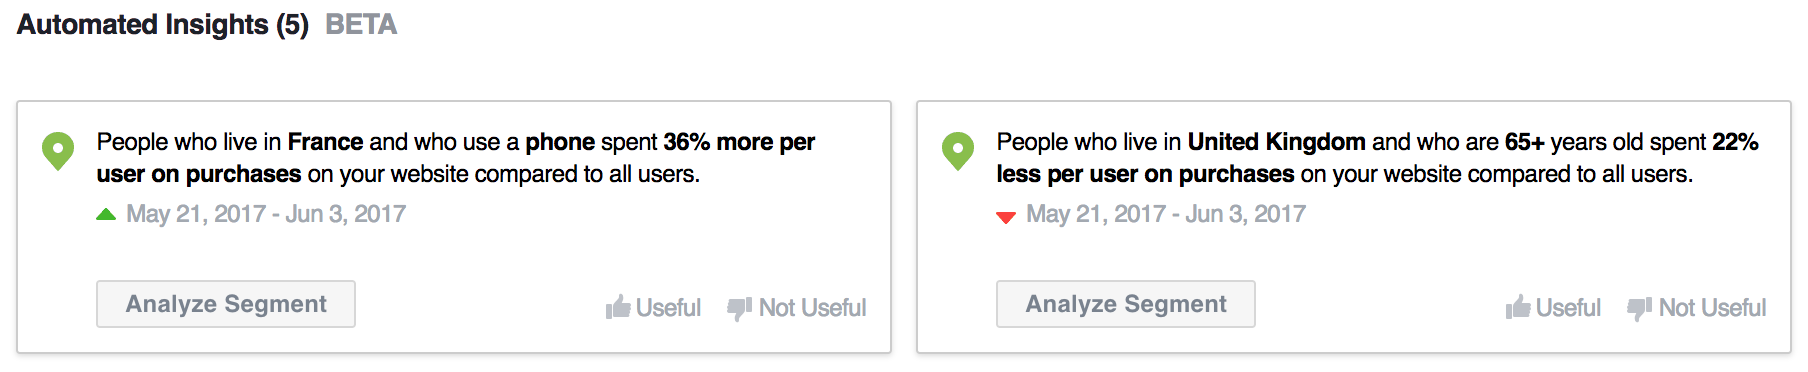 Facebook Analytics Automated Insights